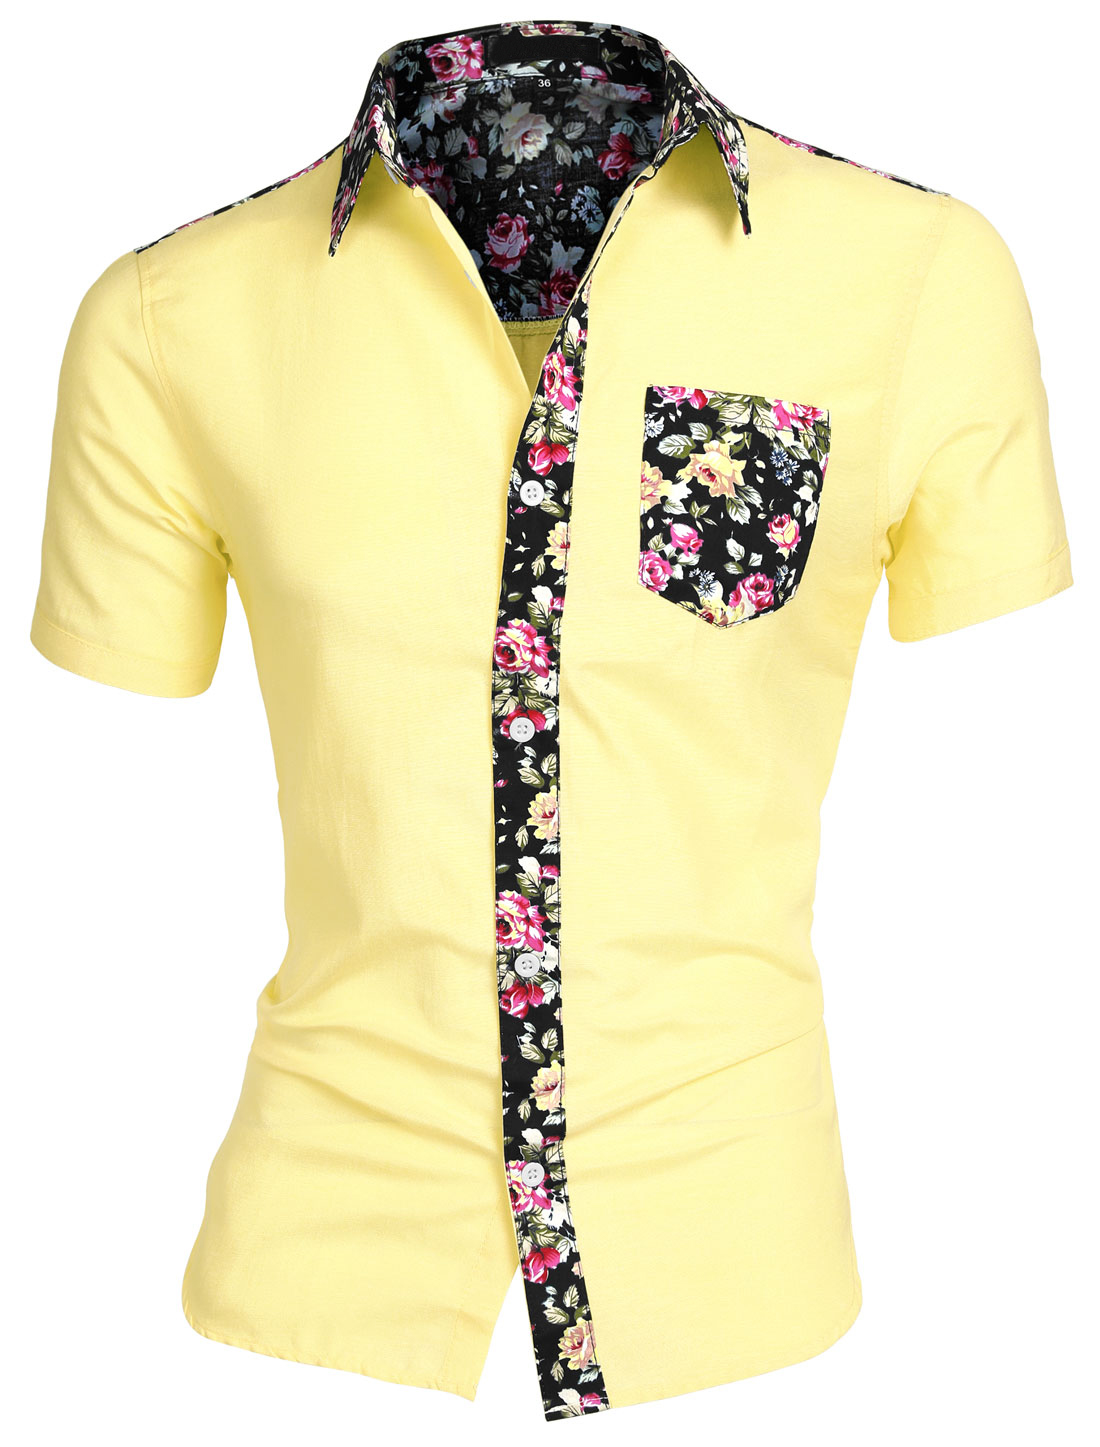 Men NEW Floral Prints Button Up One Chest Pocket Shirt Light Yellow S